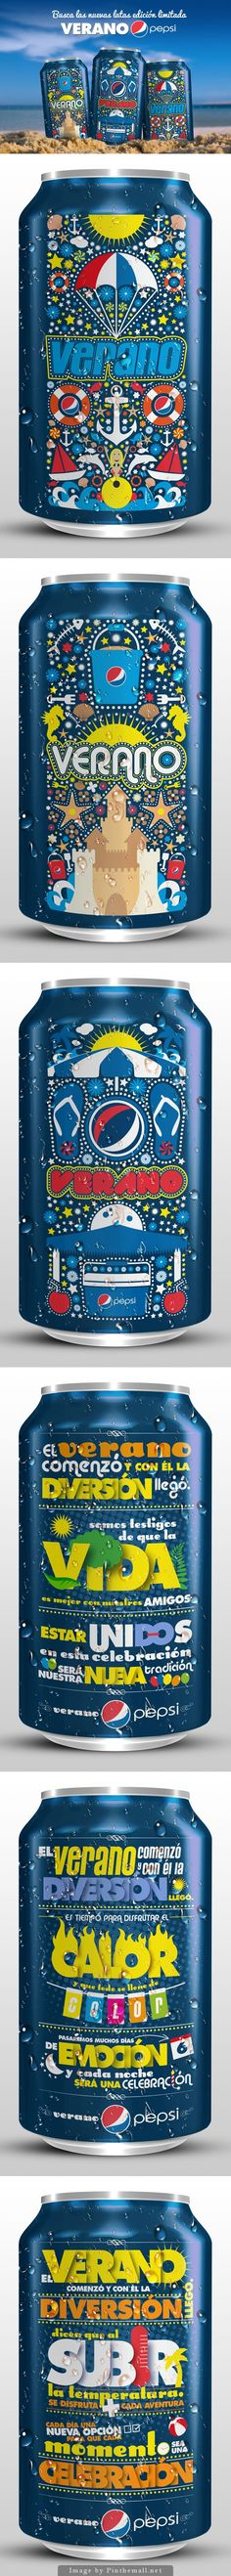 Verano Pepsi designs. Who's ready for a #Pepsi now #packaging curated by Packaging Diva PD created via https://www.behance.net/gallery/10506761/Latas-Verano-Pepsi-Pepsi-Summer-Cans